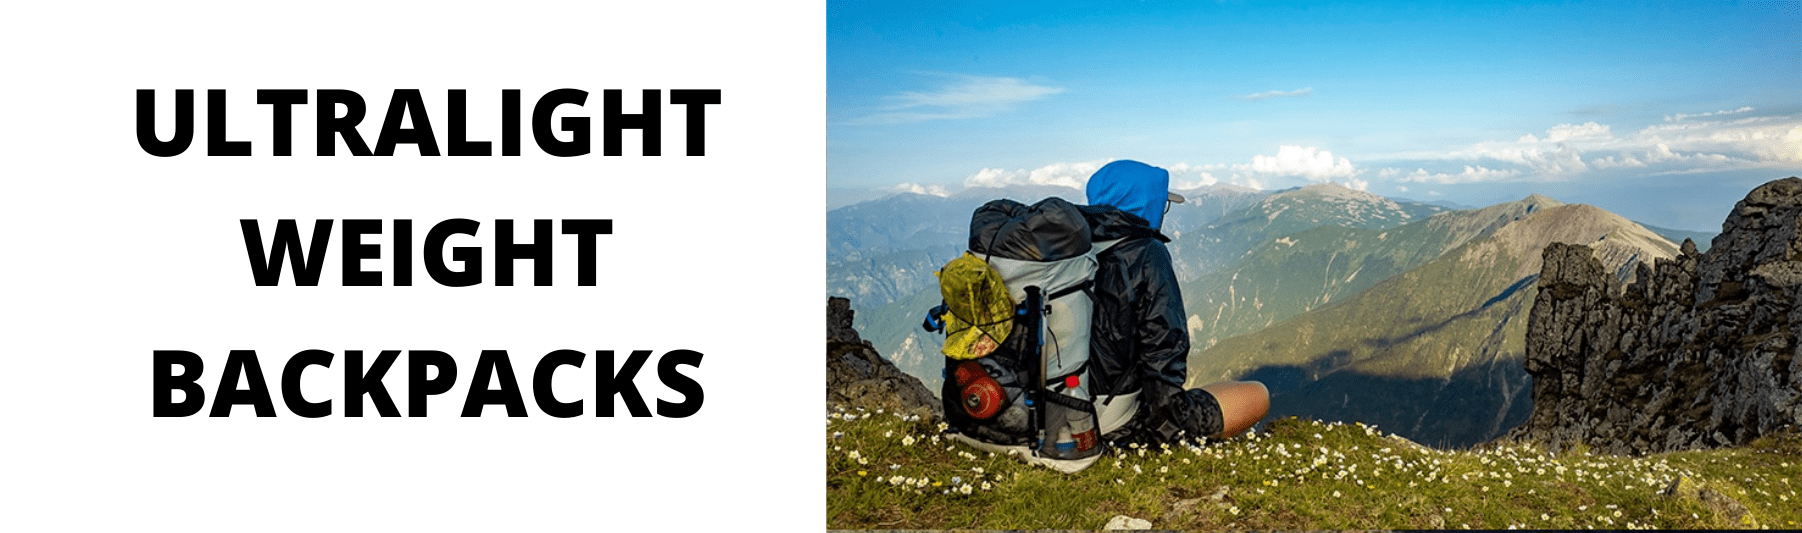 Framed Ultralight Weight Backpacks